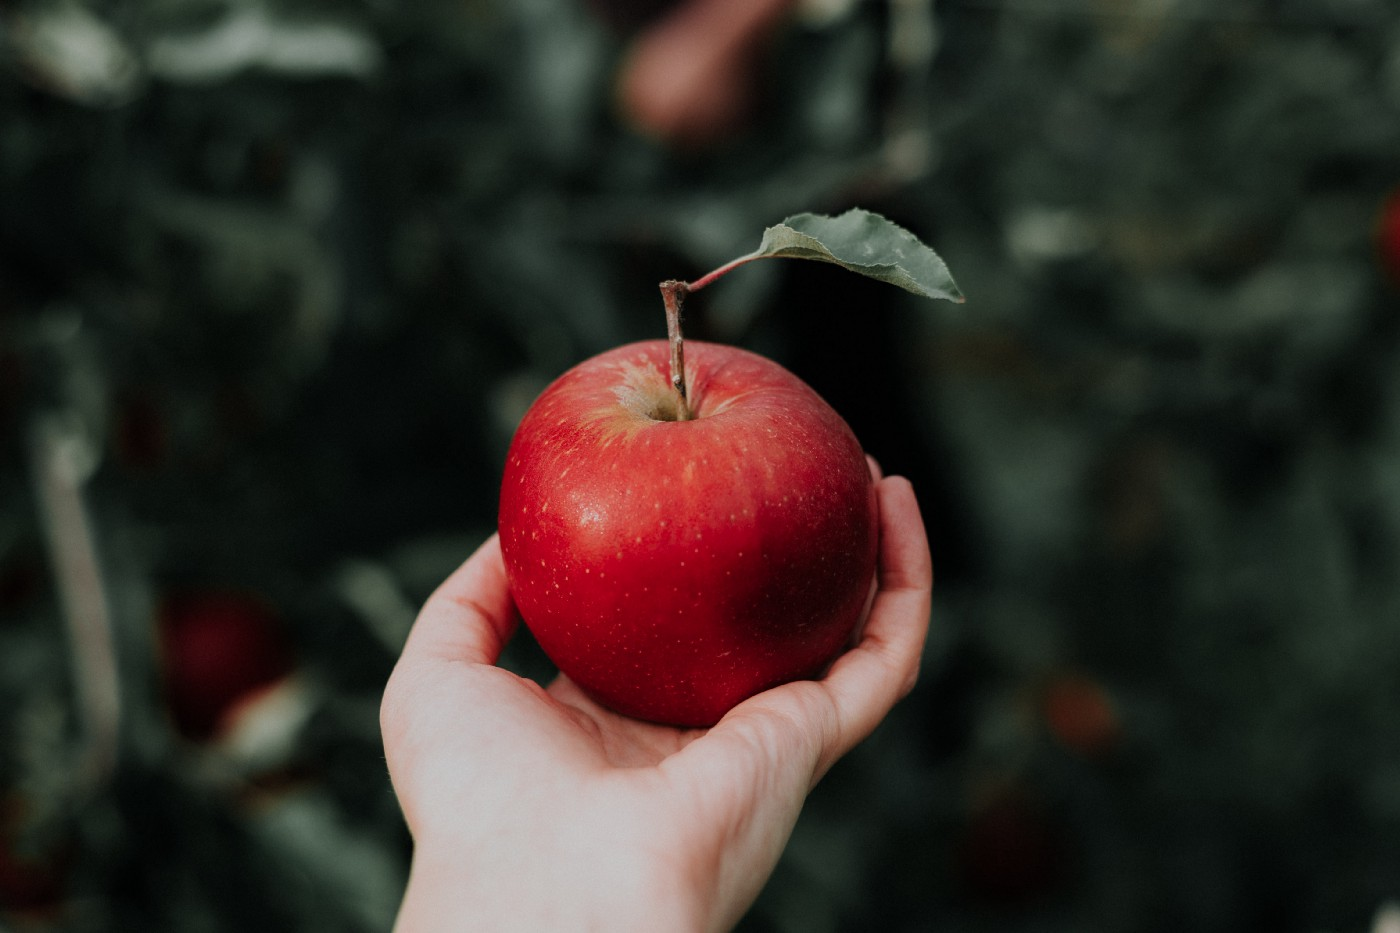 A crisp, red apple in the palm of a hand against a dark background.